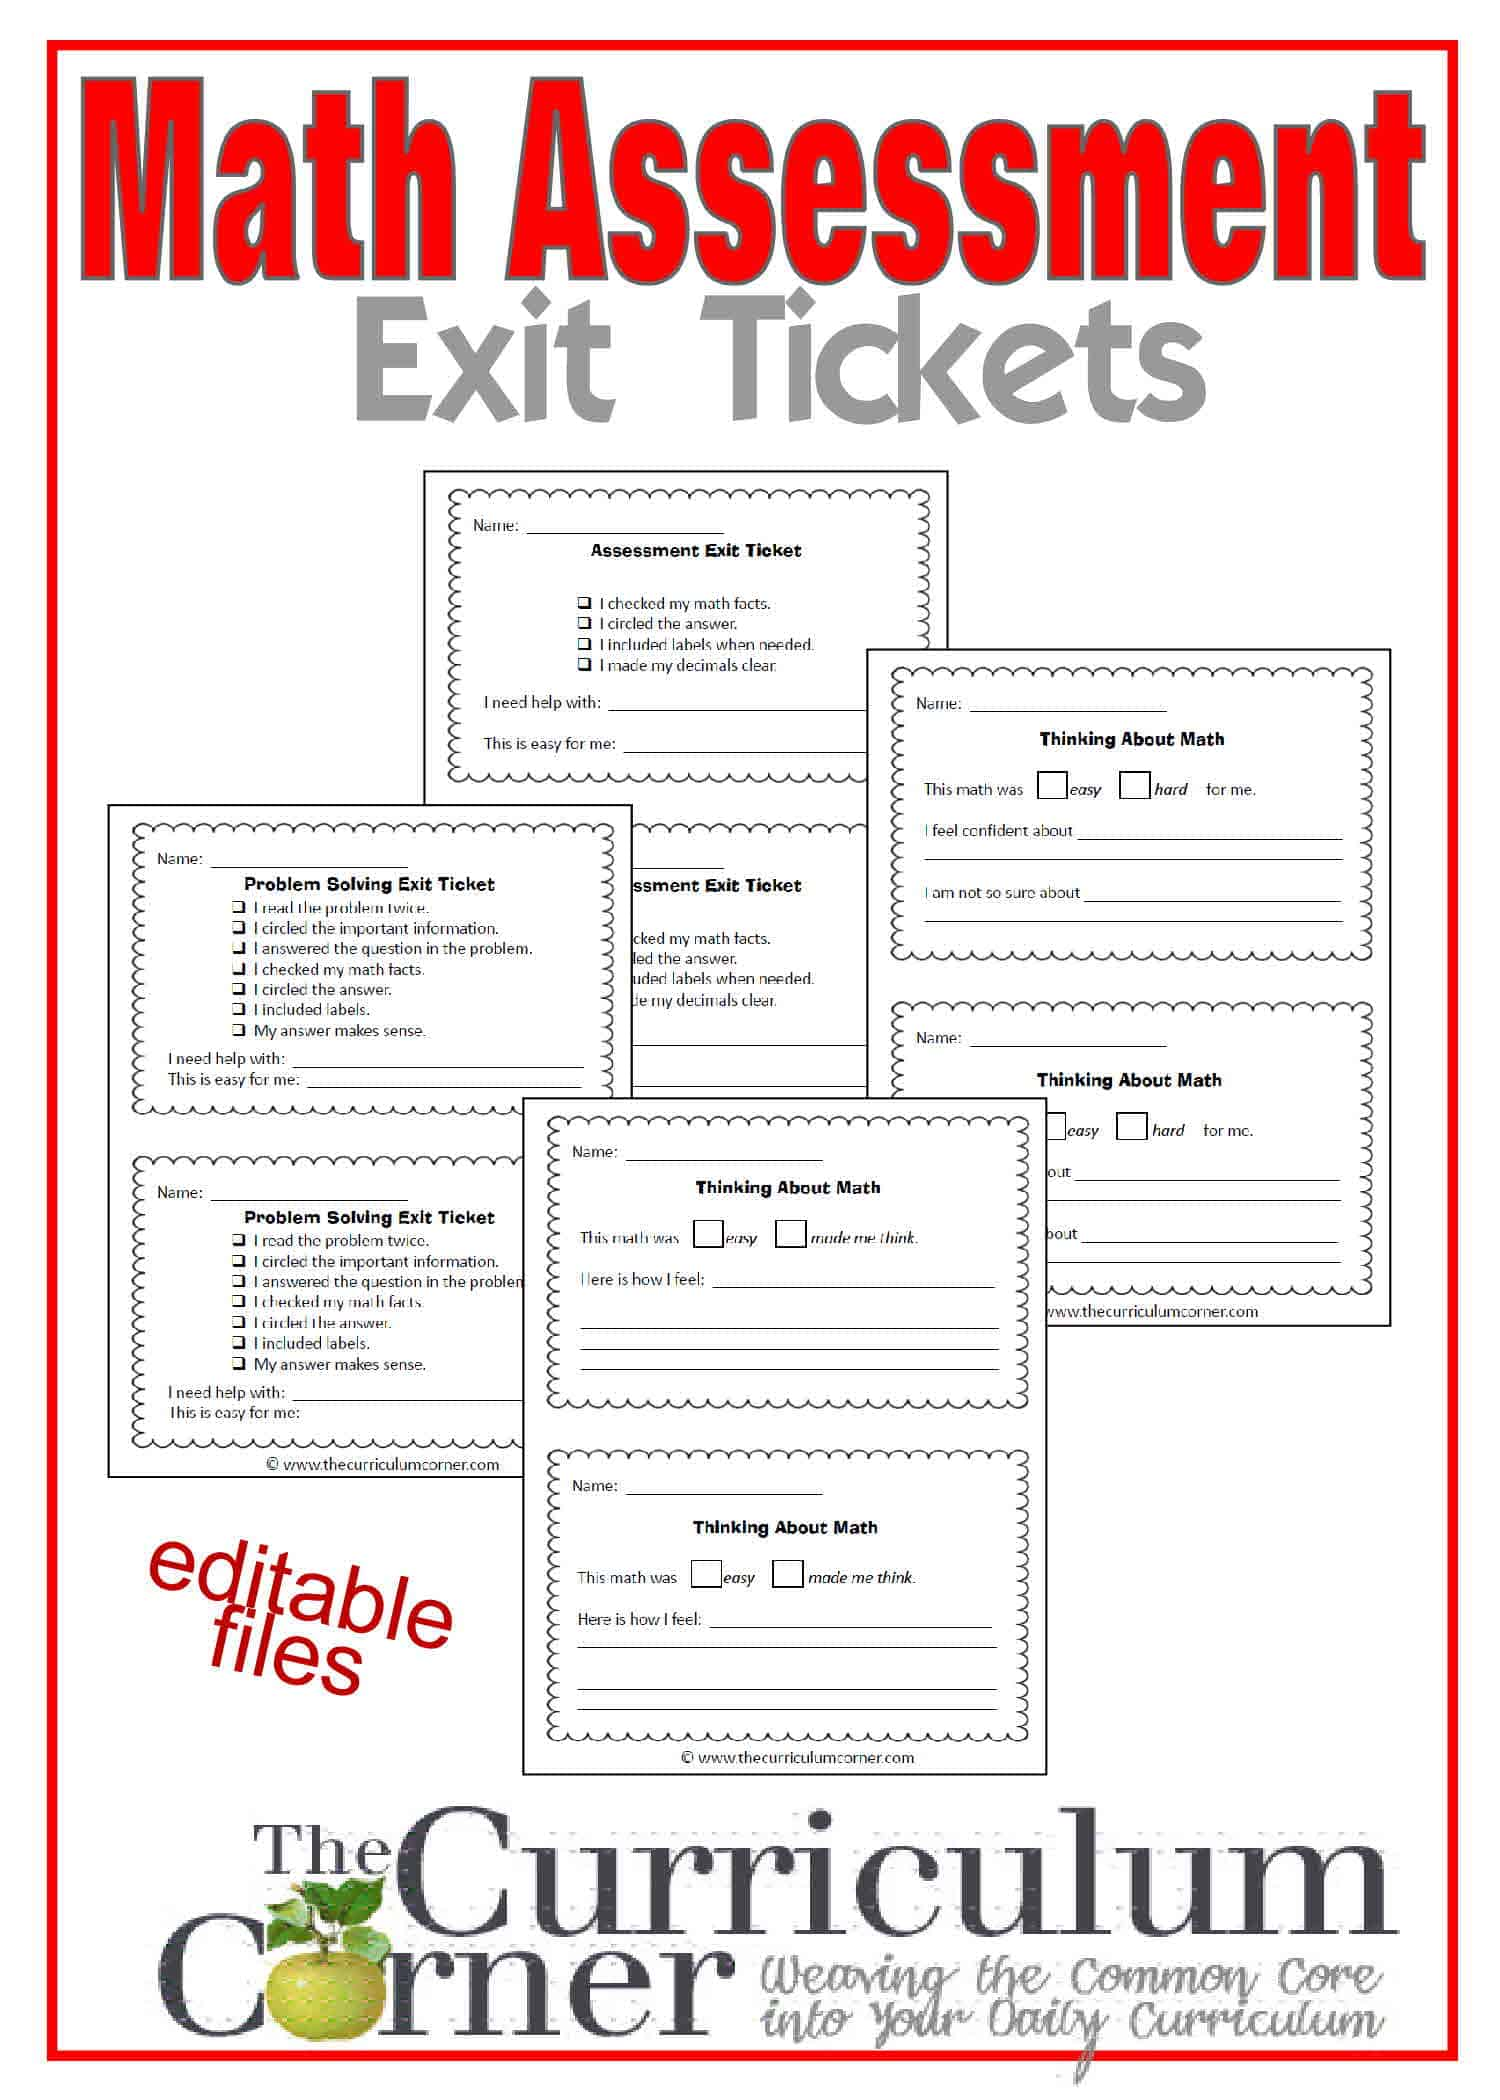 Math Assessment Exit Tickets